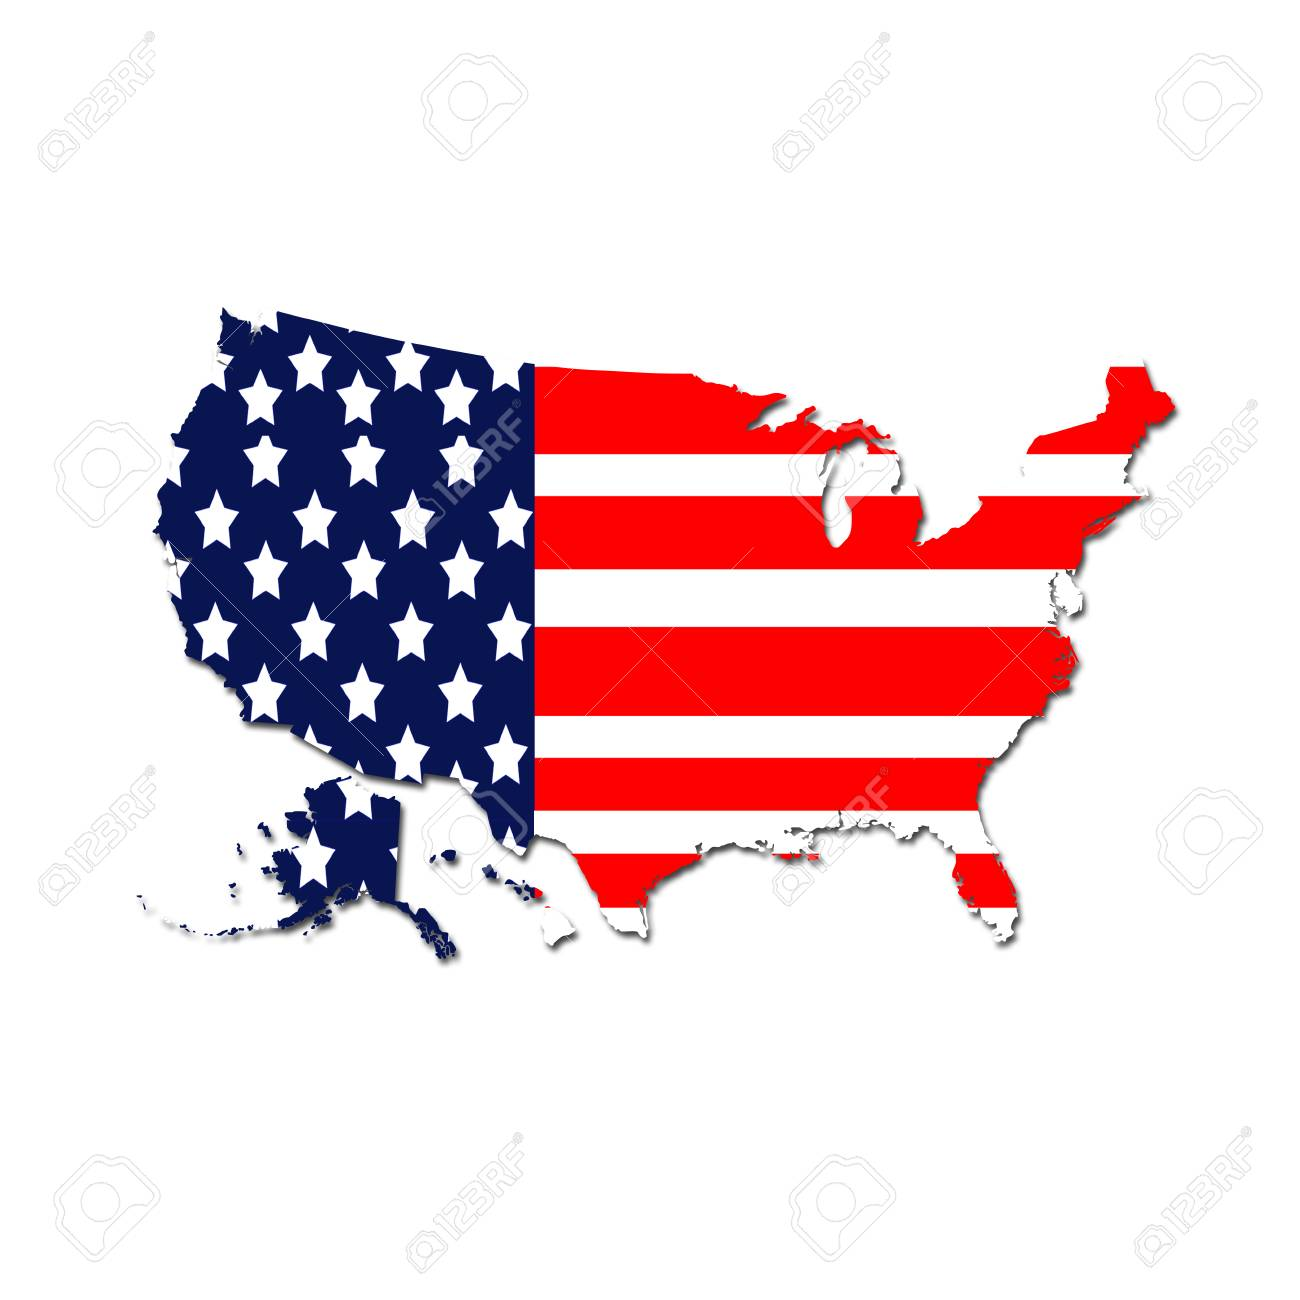 United States Map With The Flag Colors Background. Stock Photo ...